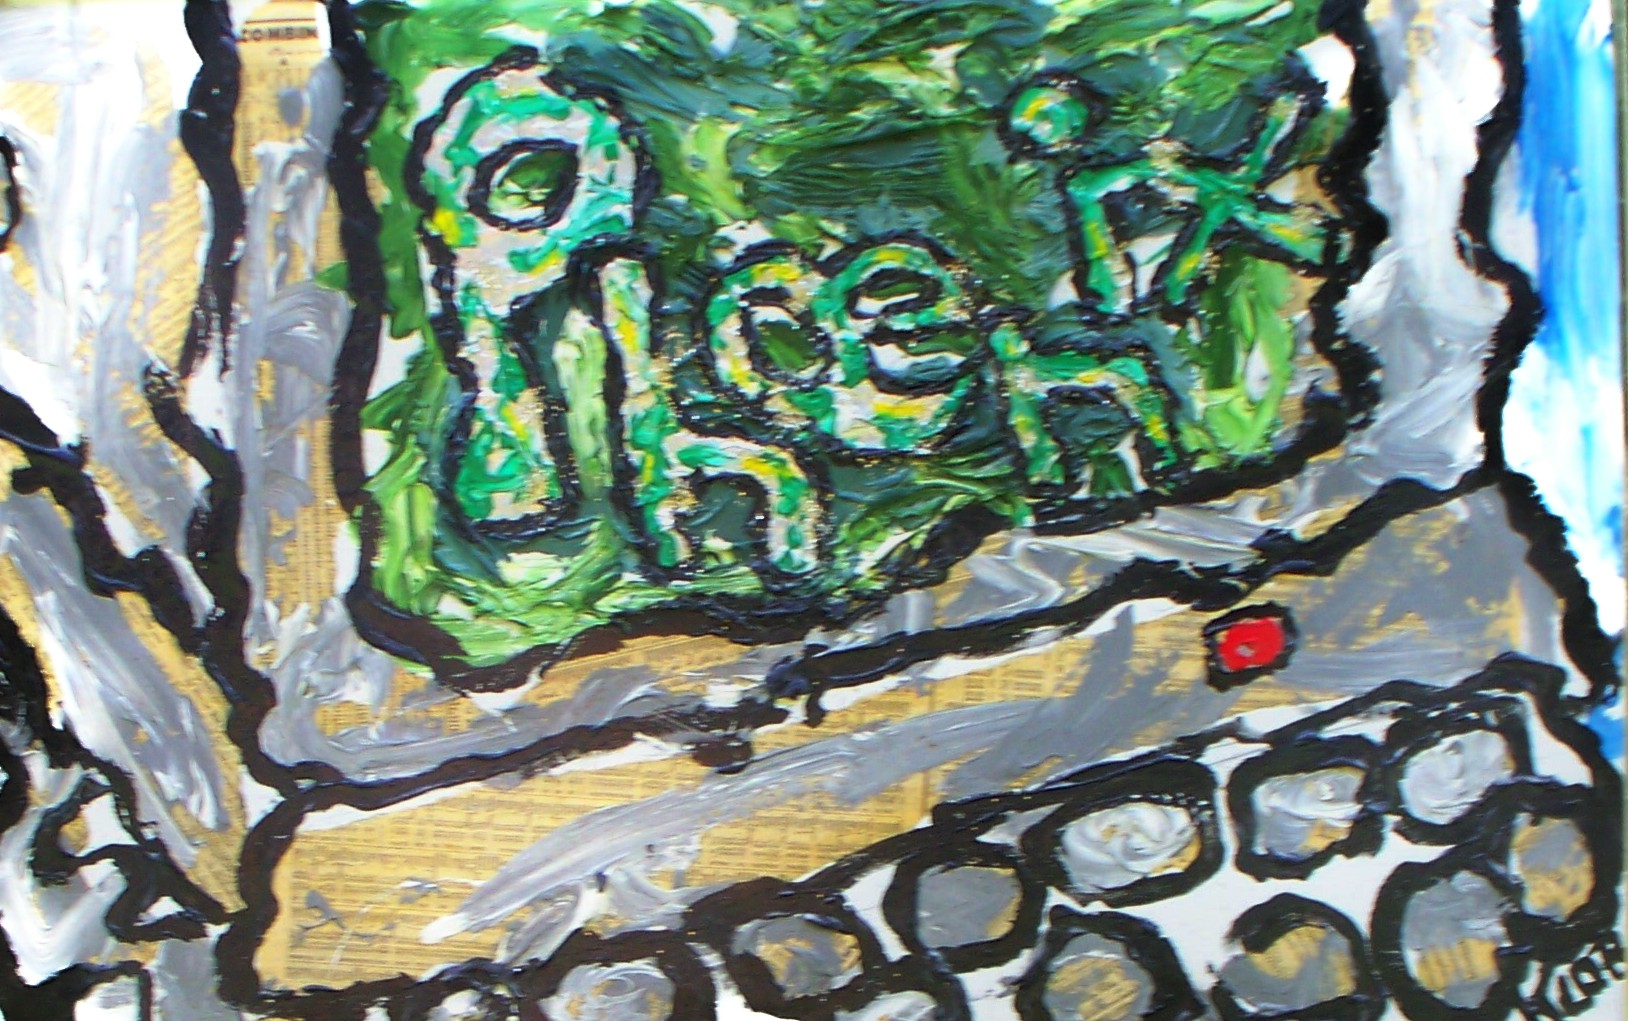 1988; acrylic, newspaper, aluminum foil; 16 in X 30 in